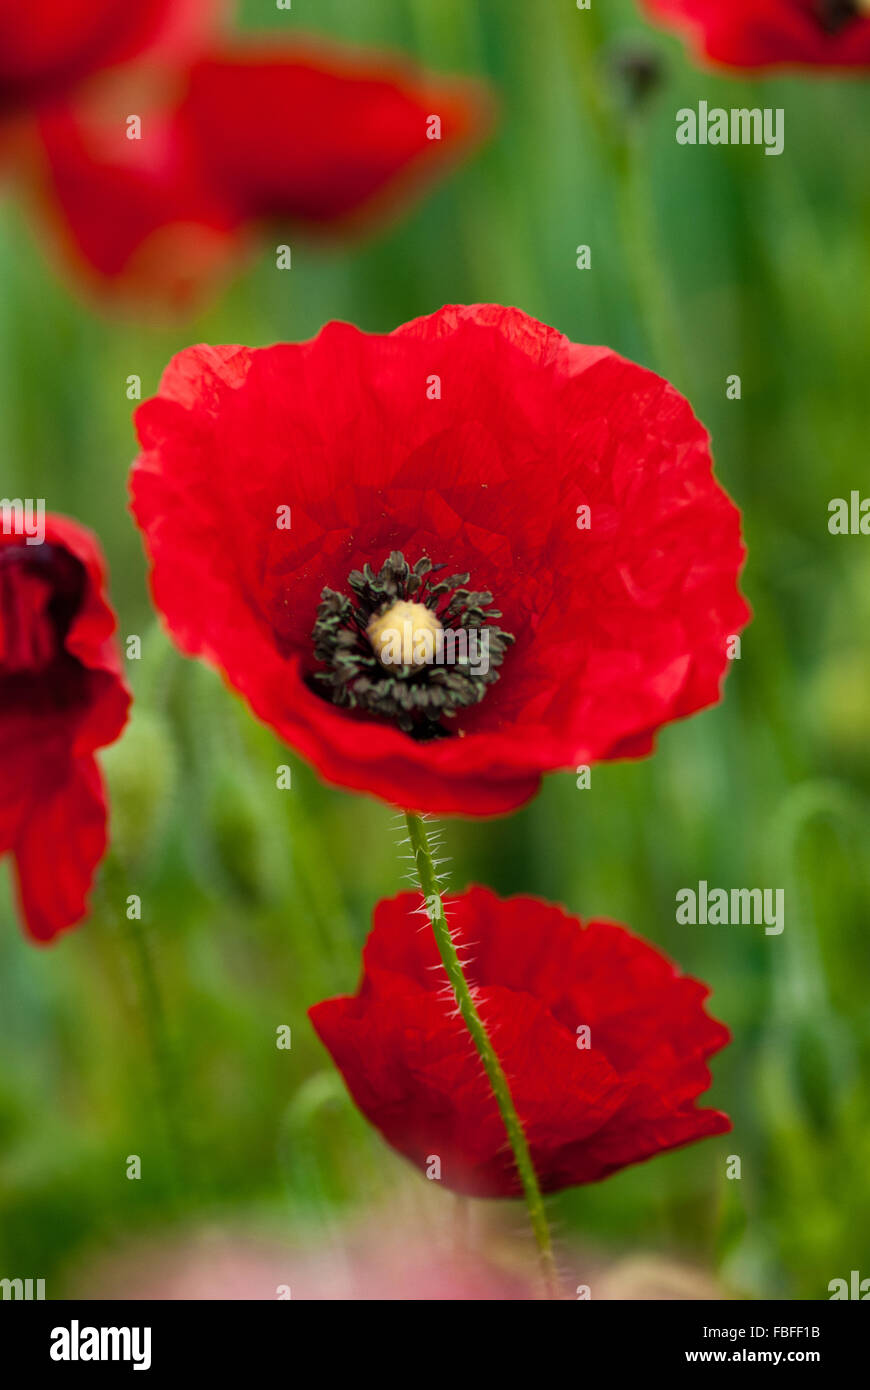 Poppies against a softly focused background, England, UK - Stock Image